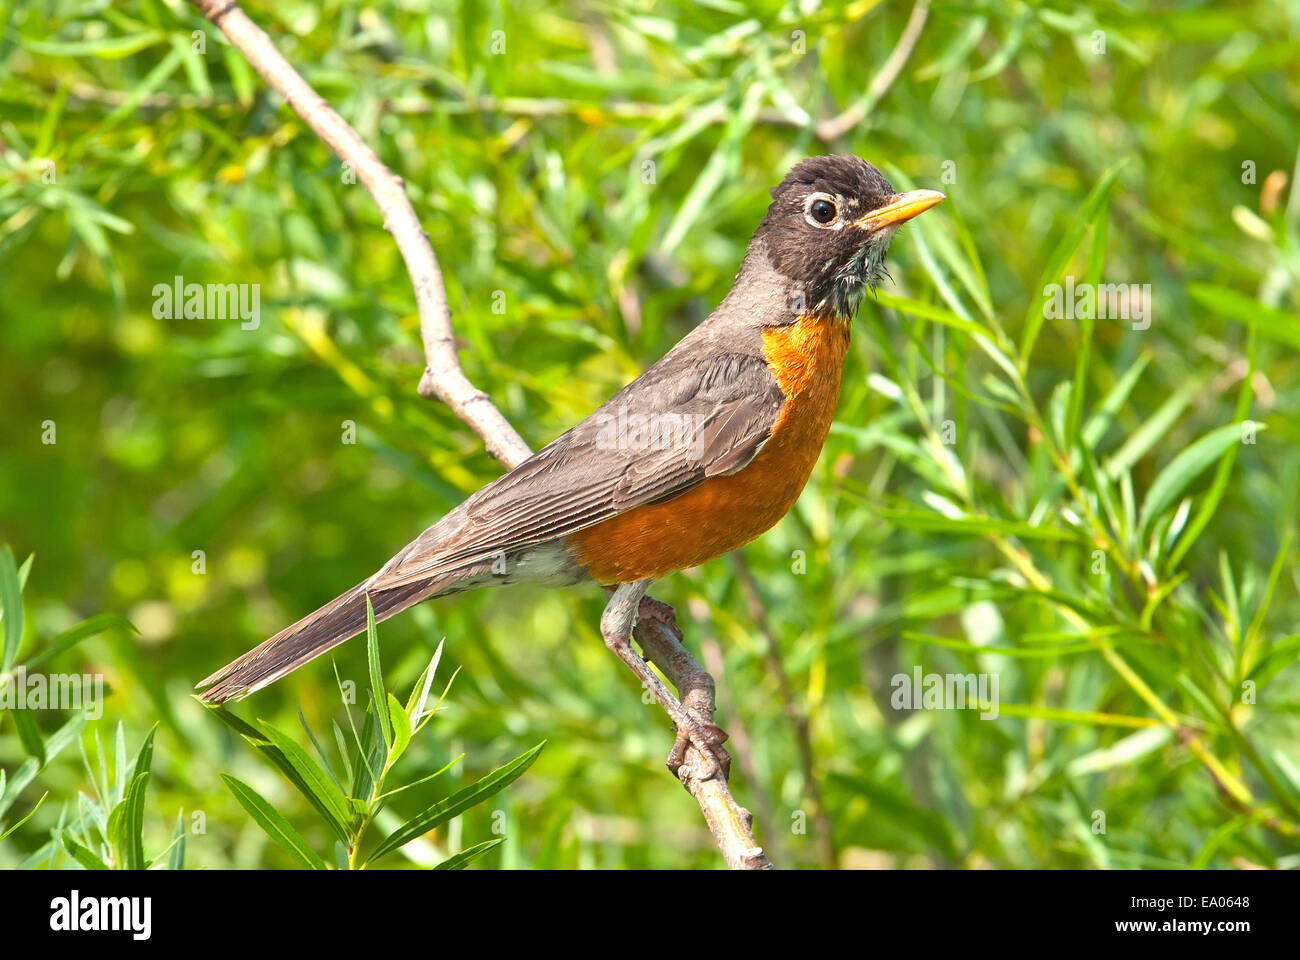 Merle d'Amérique Turdus migratorius, sur la branche, Photo Stock